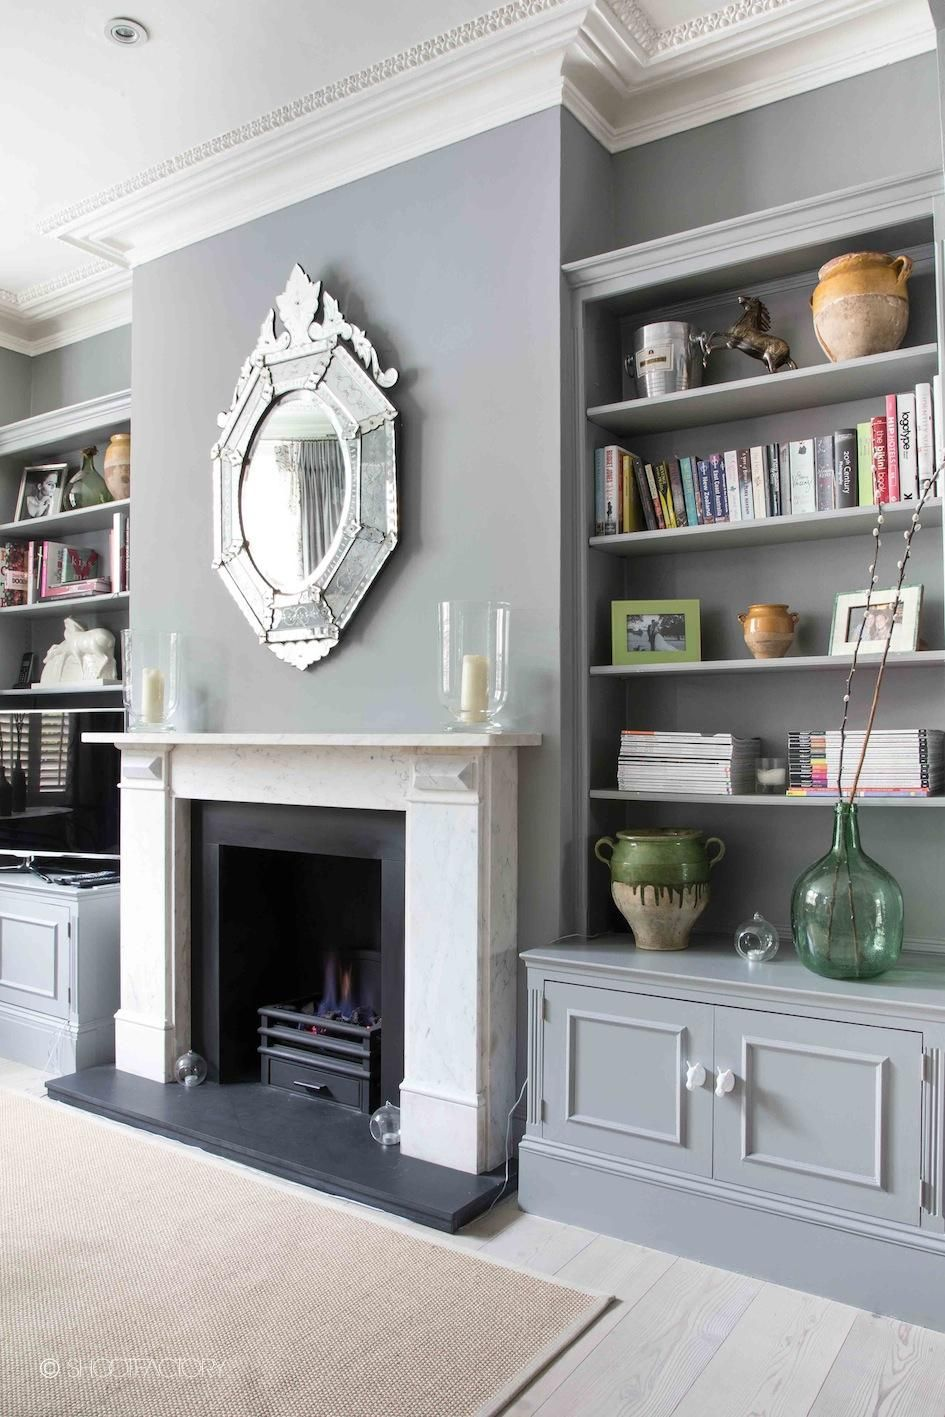 wwwoveratkatescom Farrow and Ball Moles Breath Victorian